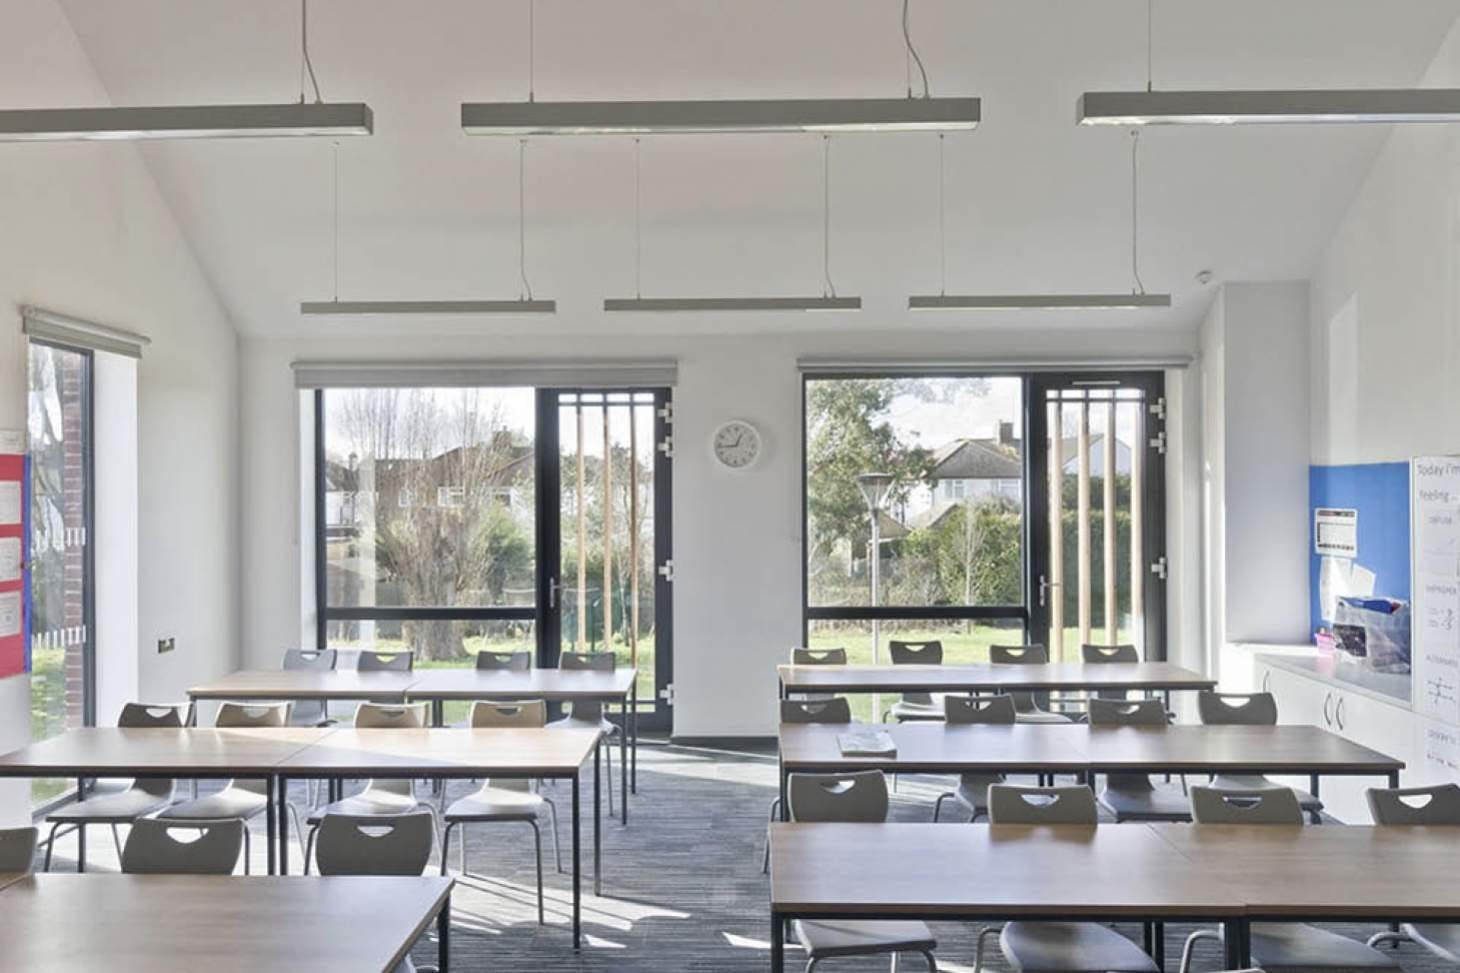 Beaumont School Classroom space hire